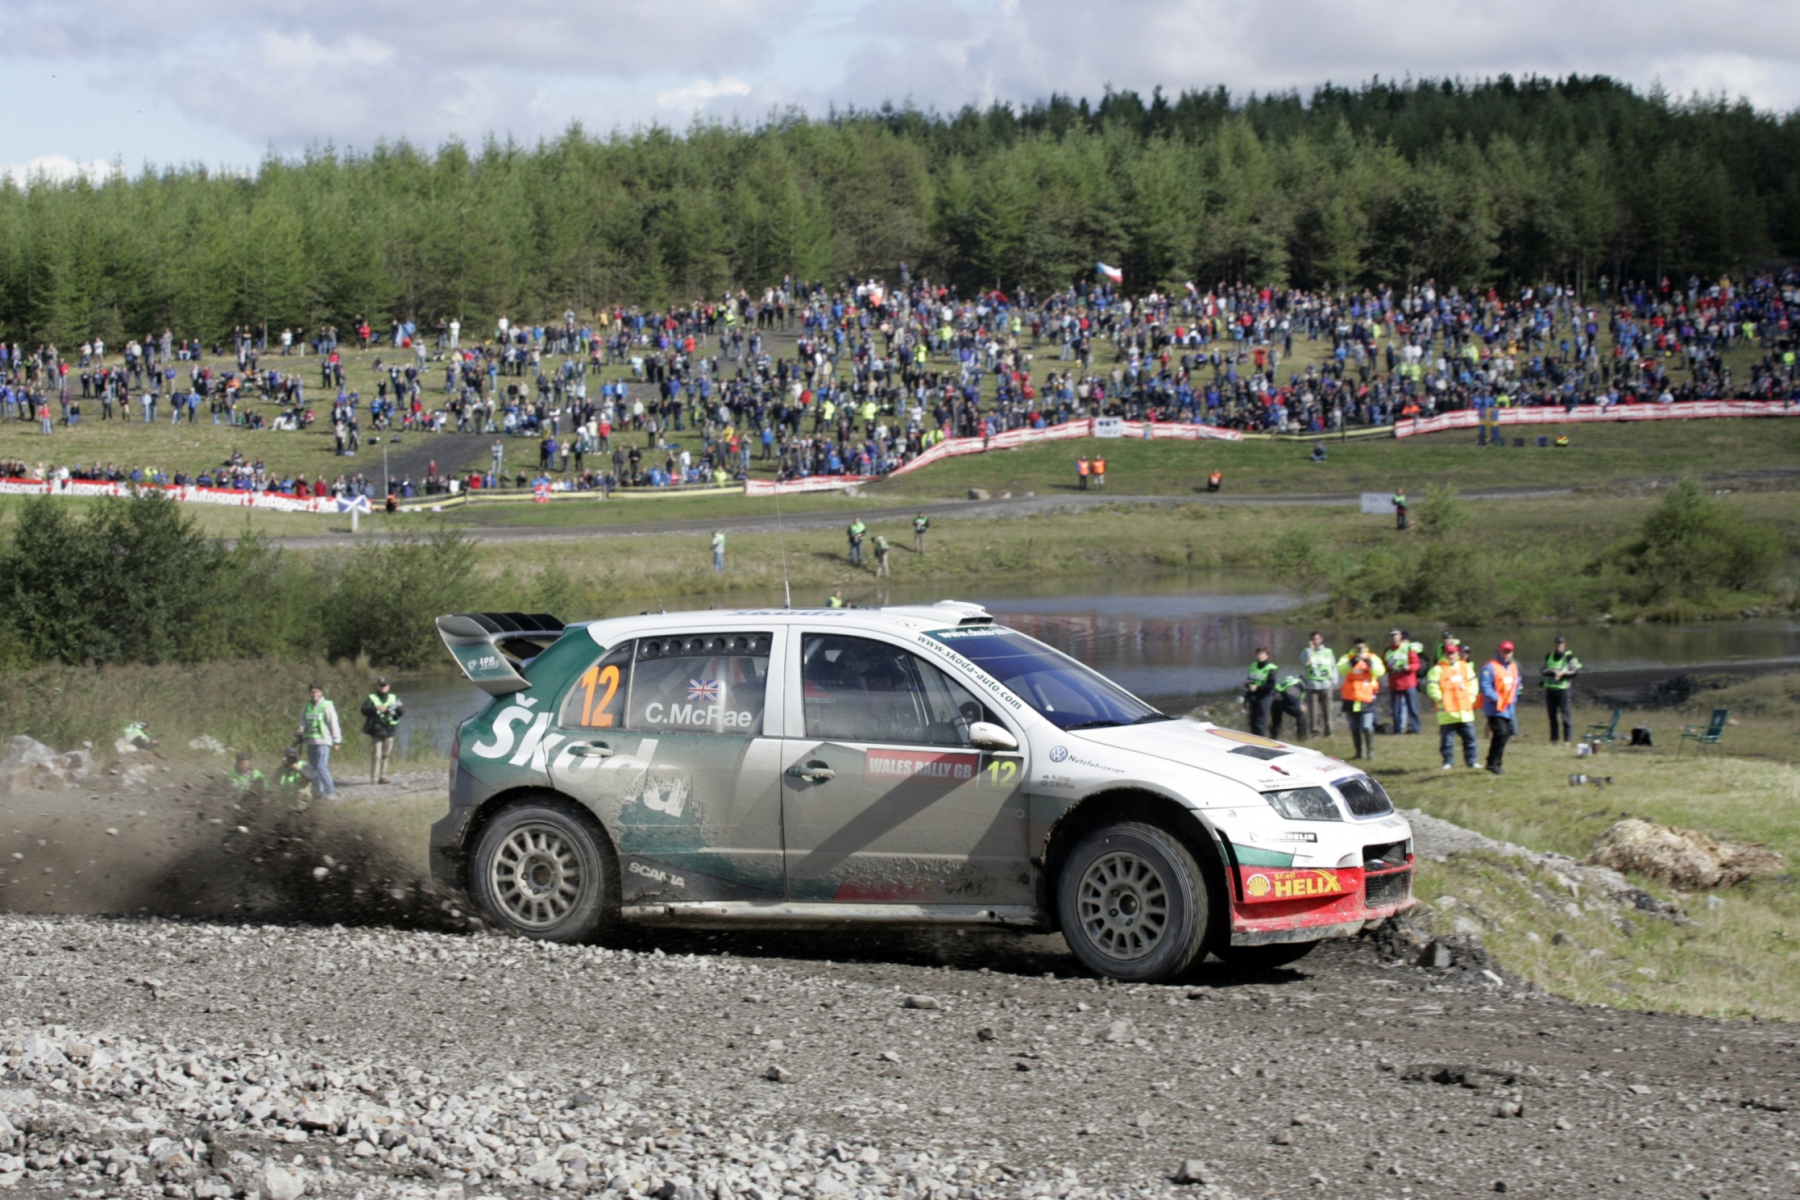 20-years-of-vRS-Colin-McRae-2005